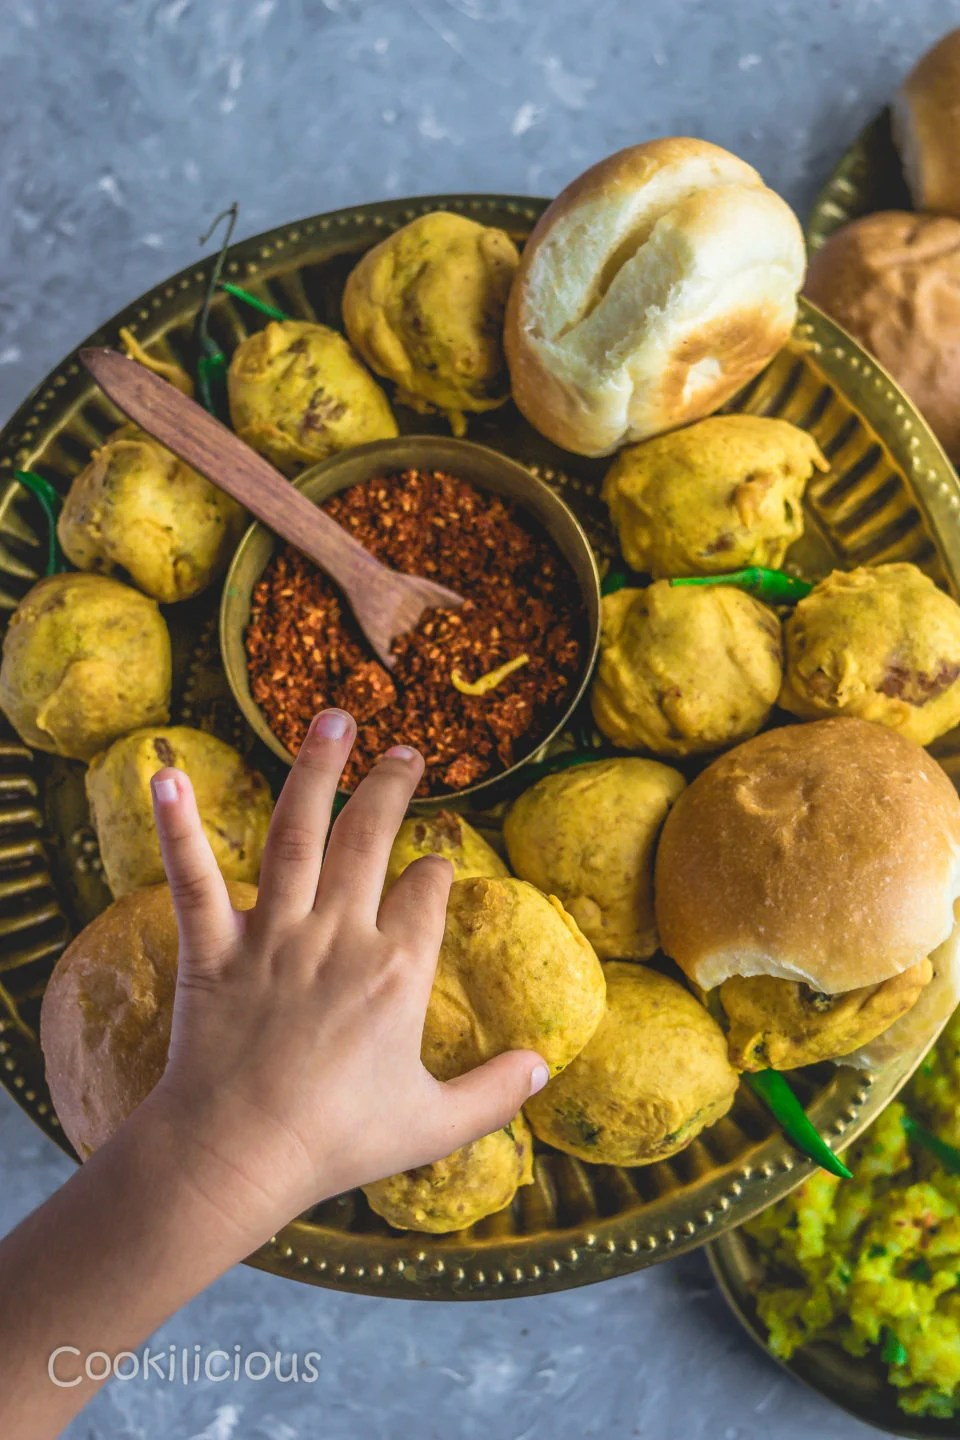 a child's hand reaching out to pick up a vada pav from a plate